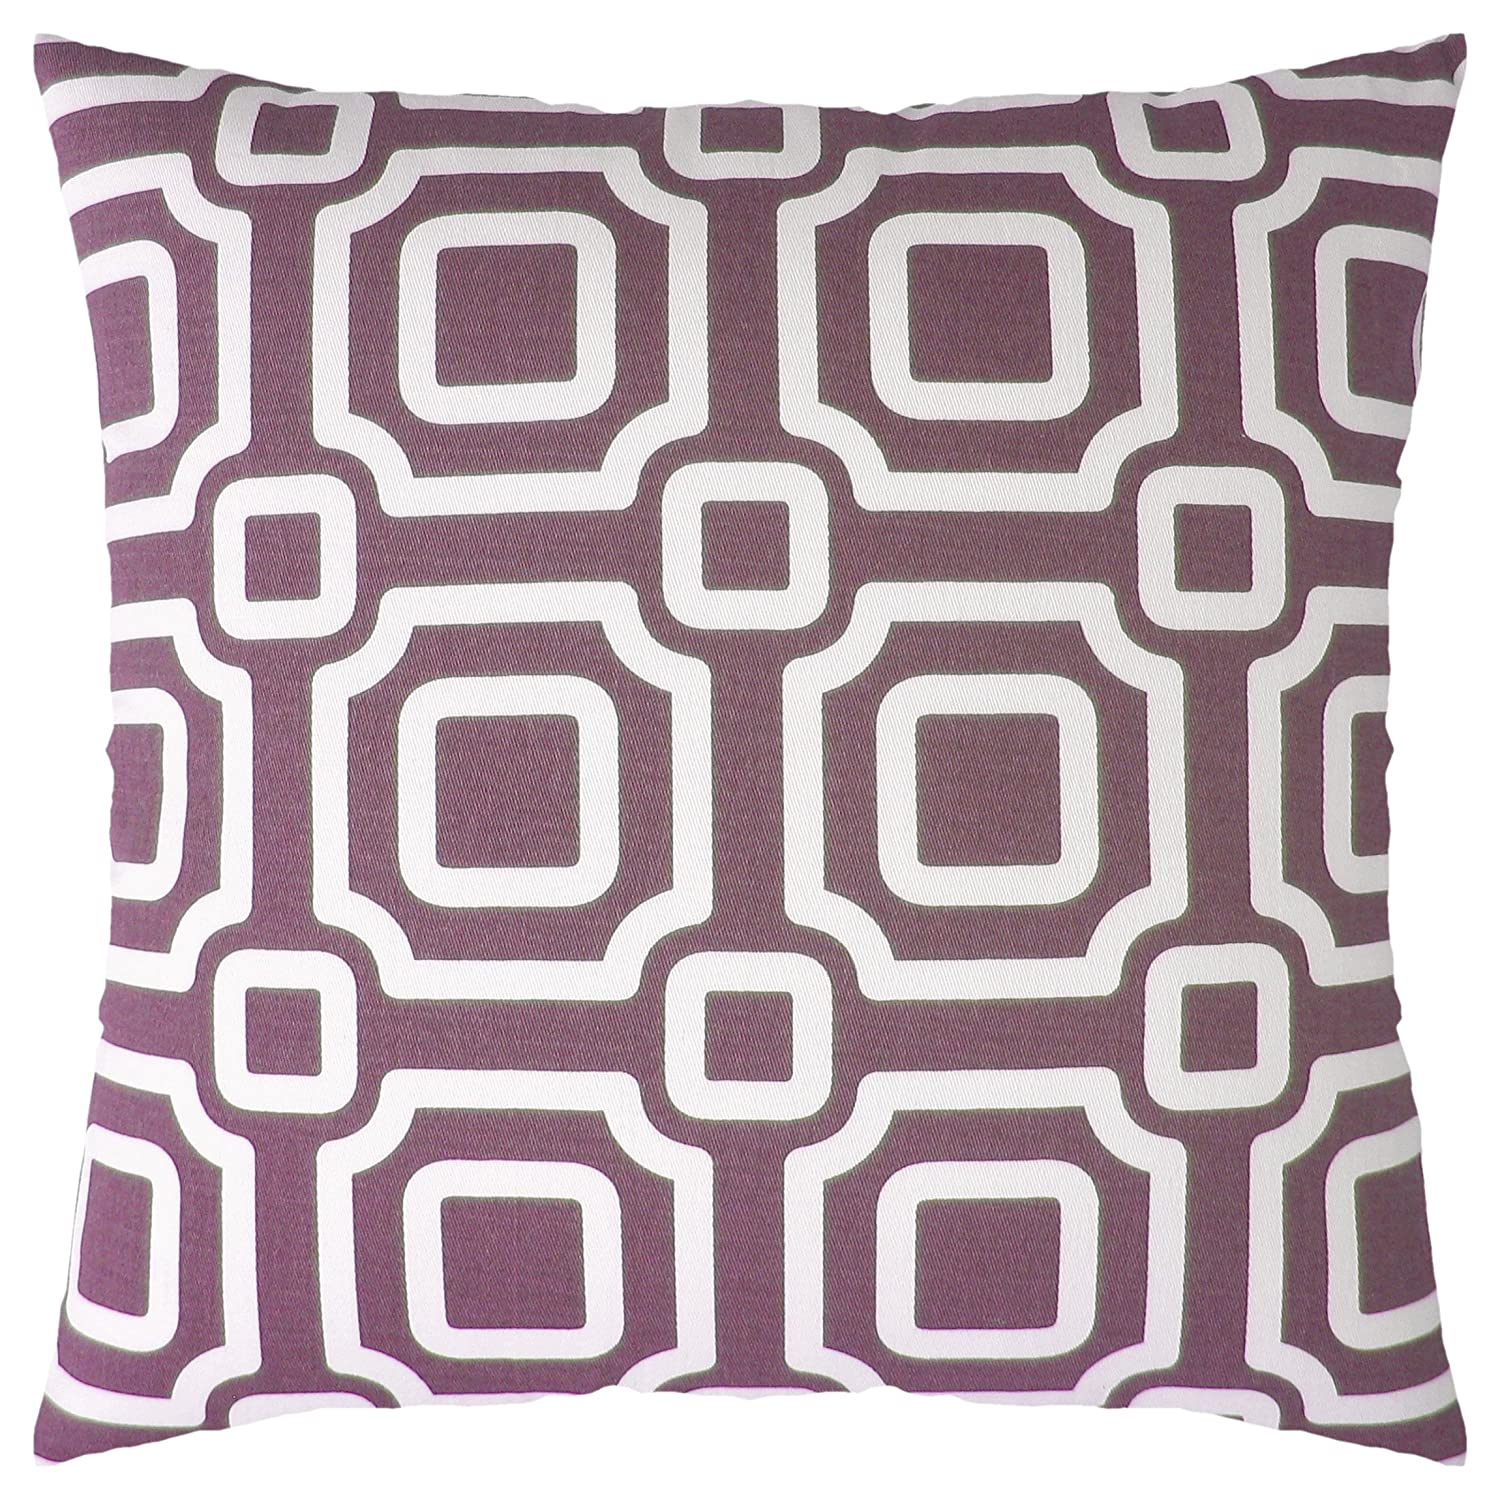 JinStyles Accent Decorative Throw Pillow Cover Lumbar 1 Cover 12 x 20 Purple Honeycomb